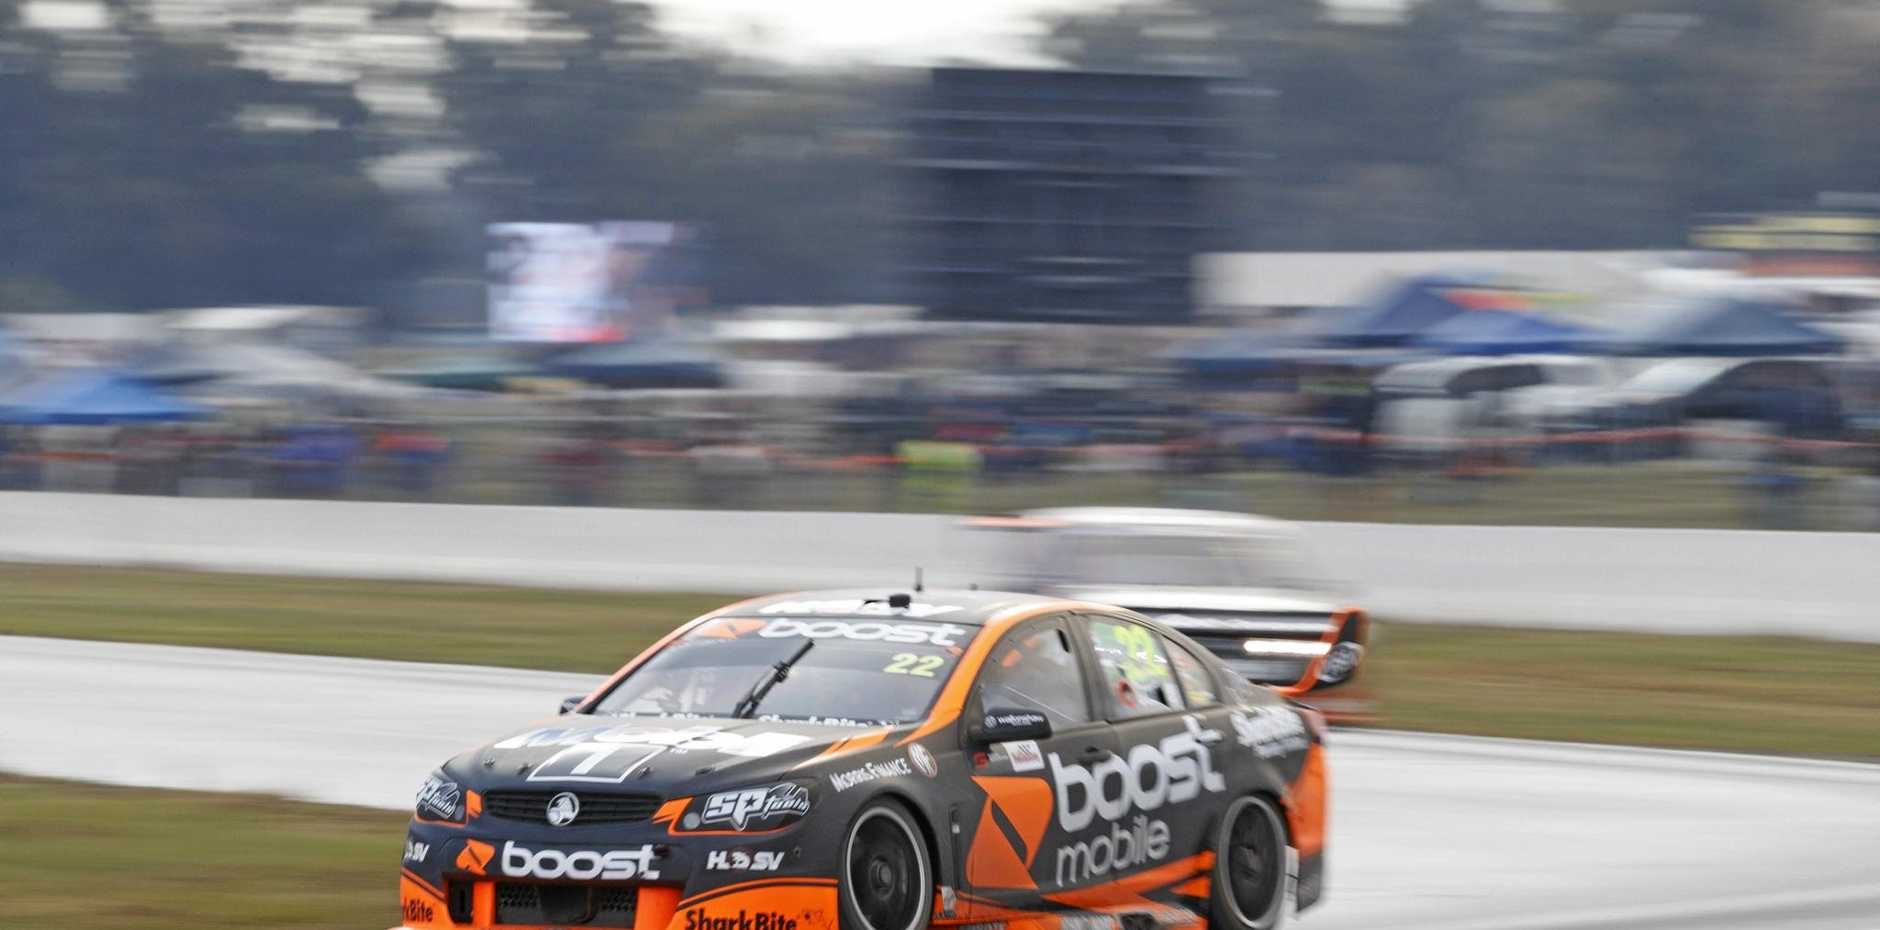 Supercars driver James Courtney is confident the HSV Racing team is about to turn the corner after a poor start to the season.